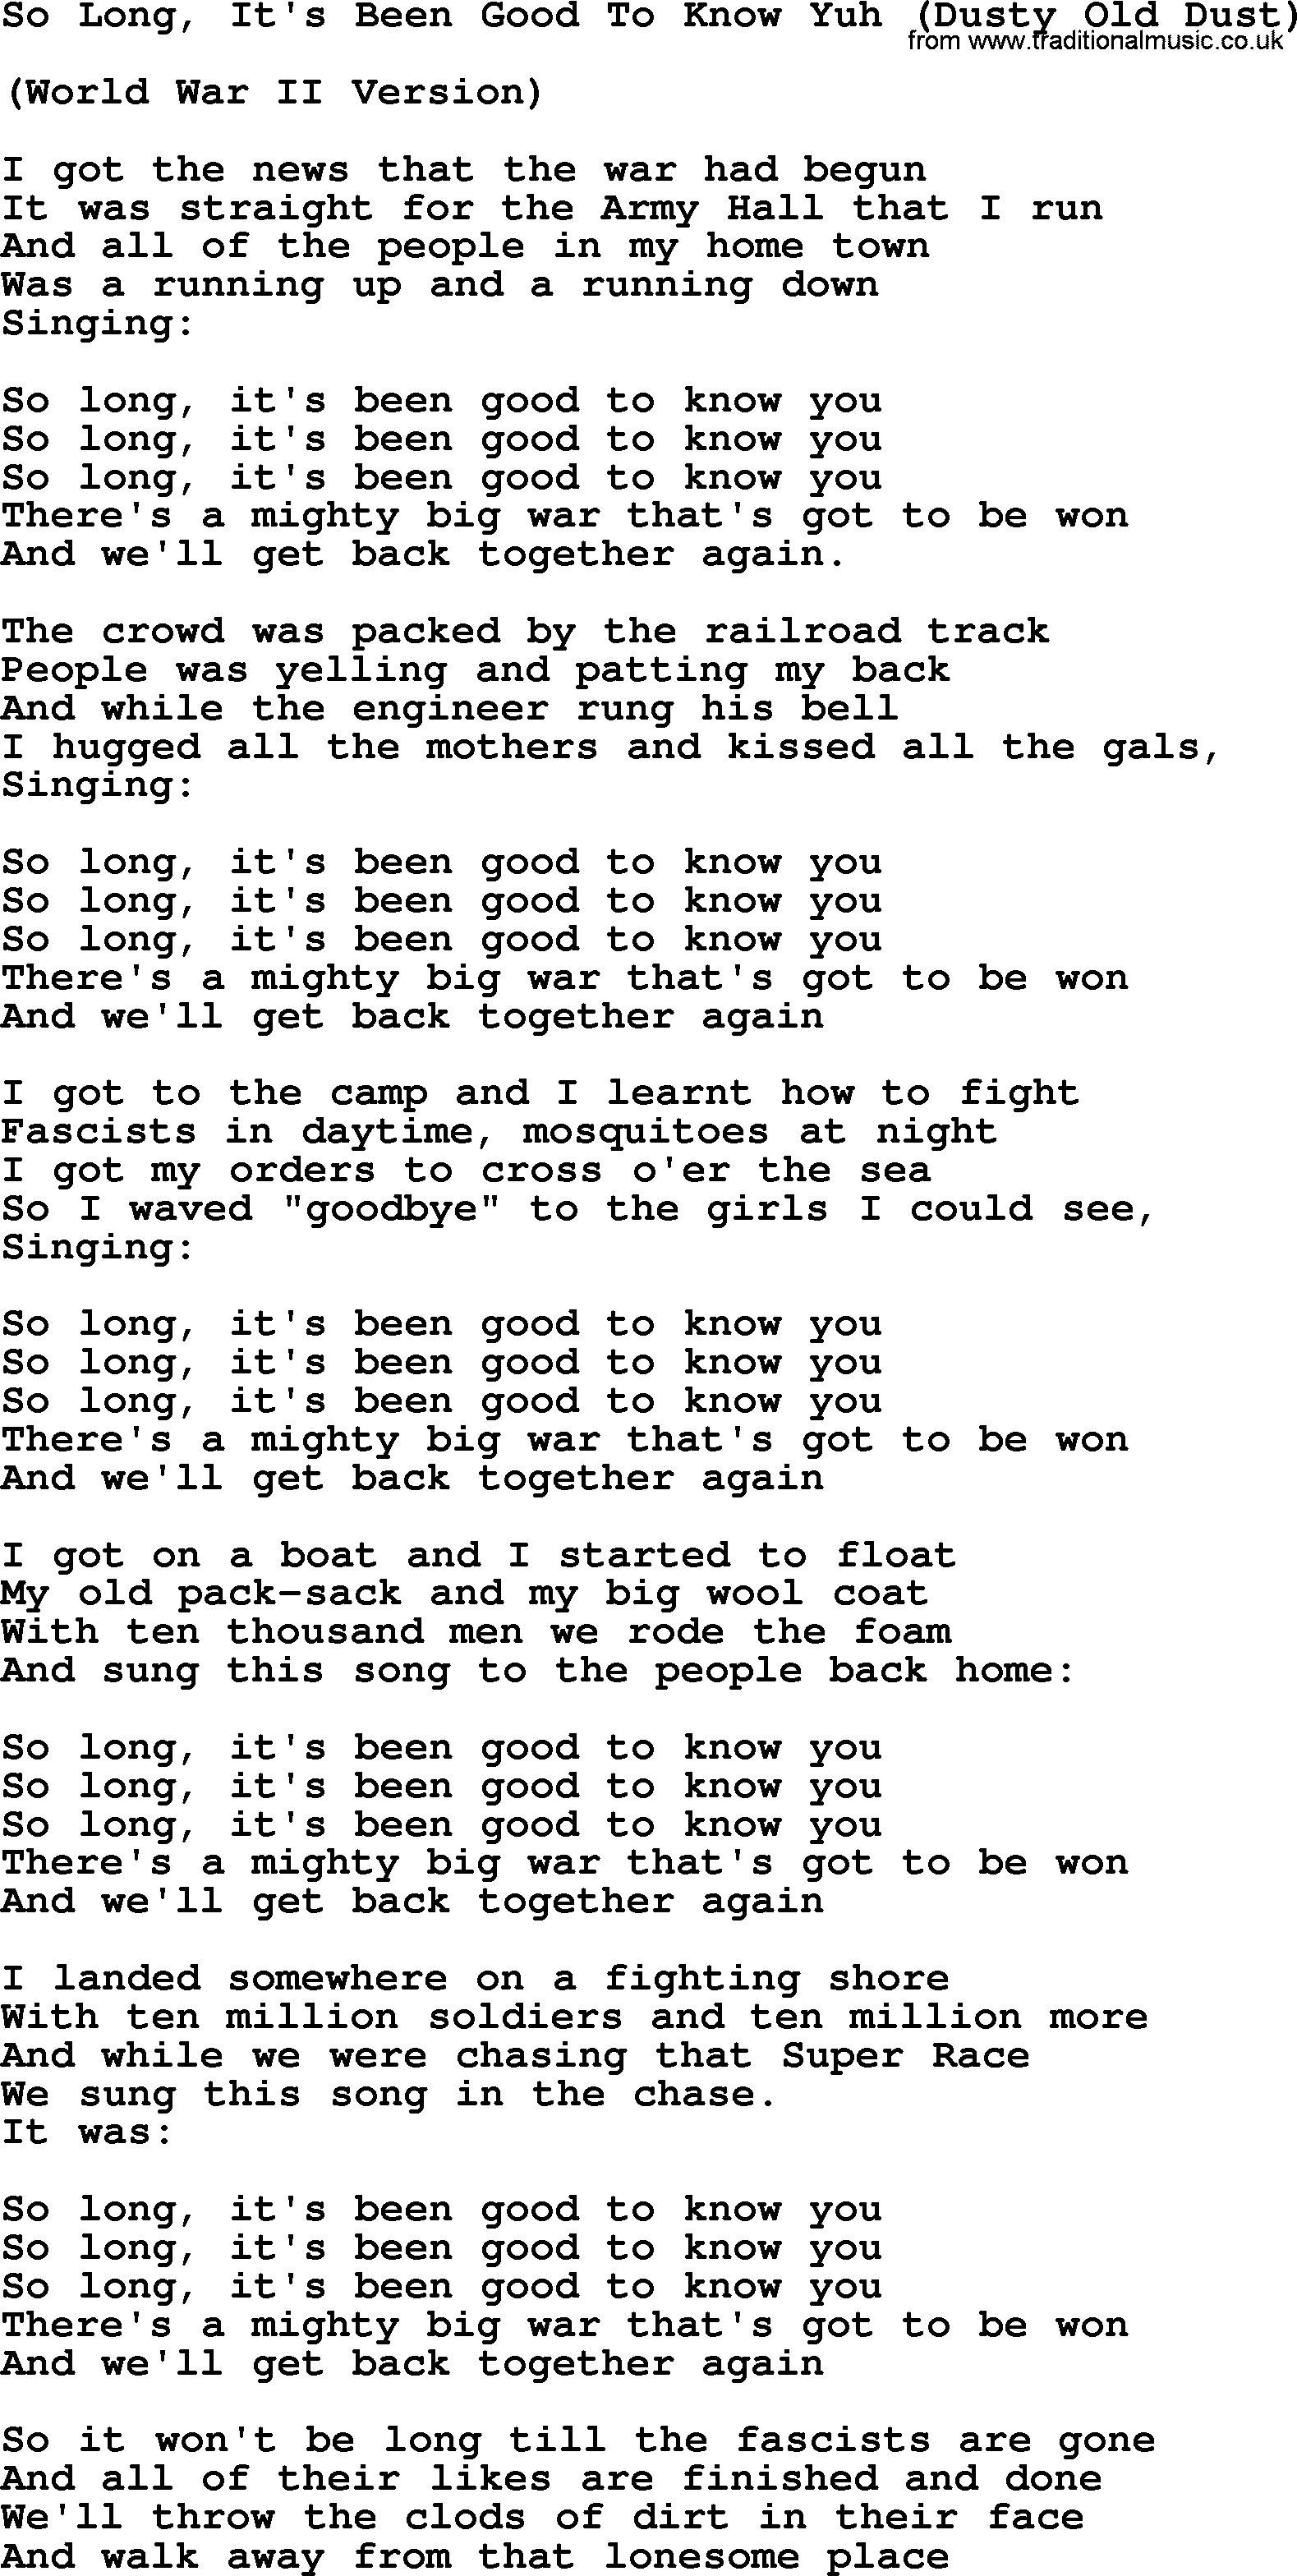 Woody Guthrie song So Long Its Been Good To Know Yuh Dusty Old